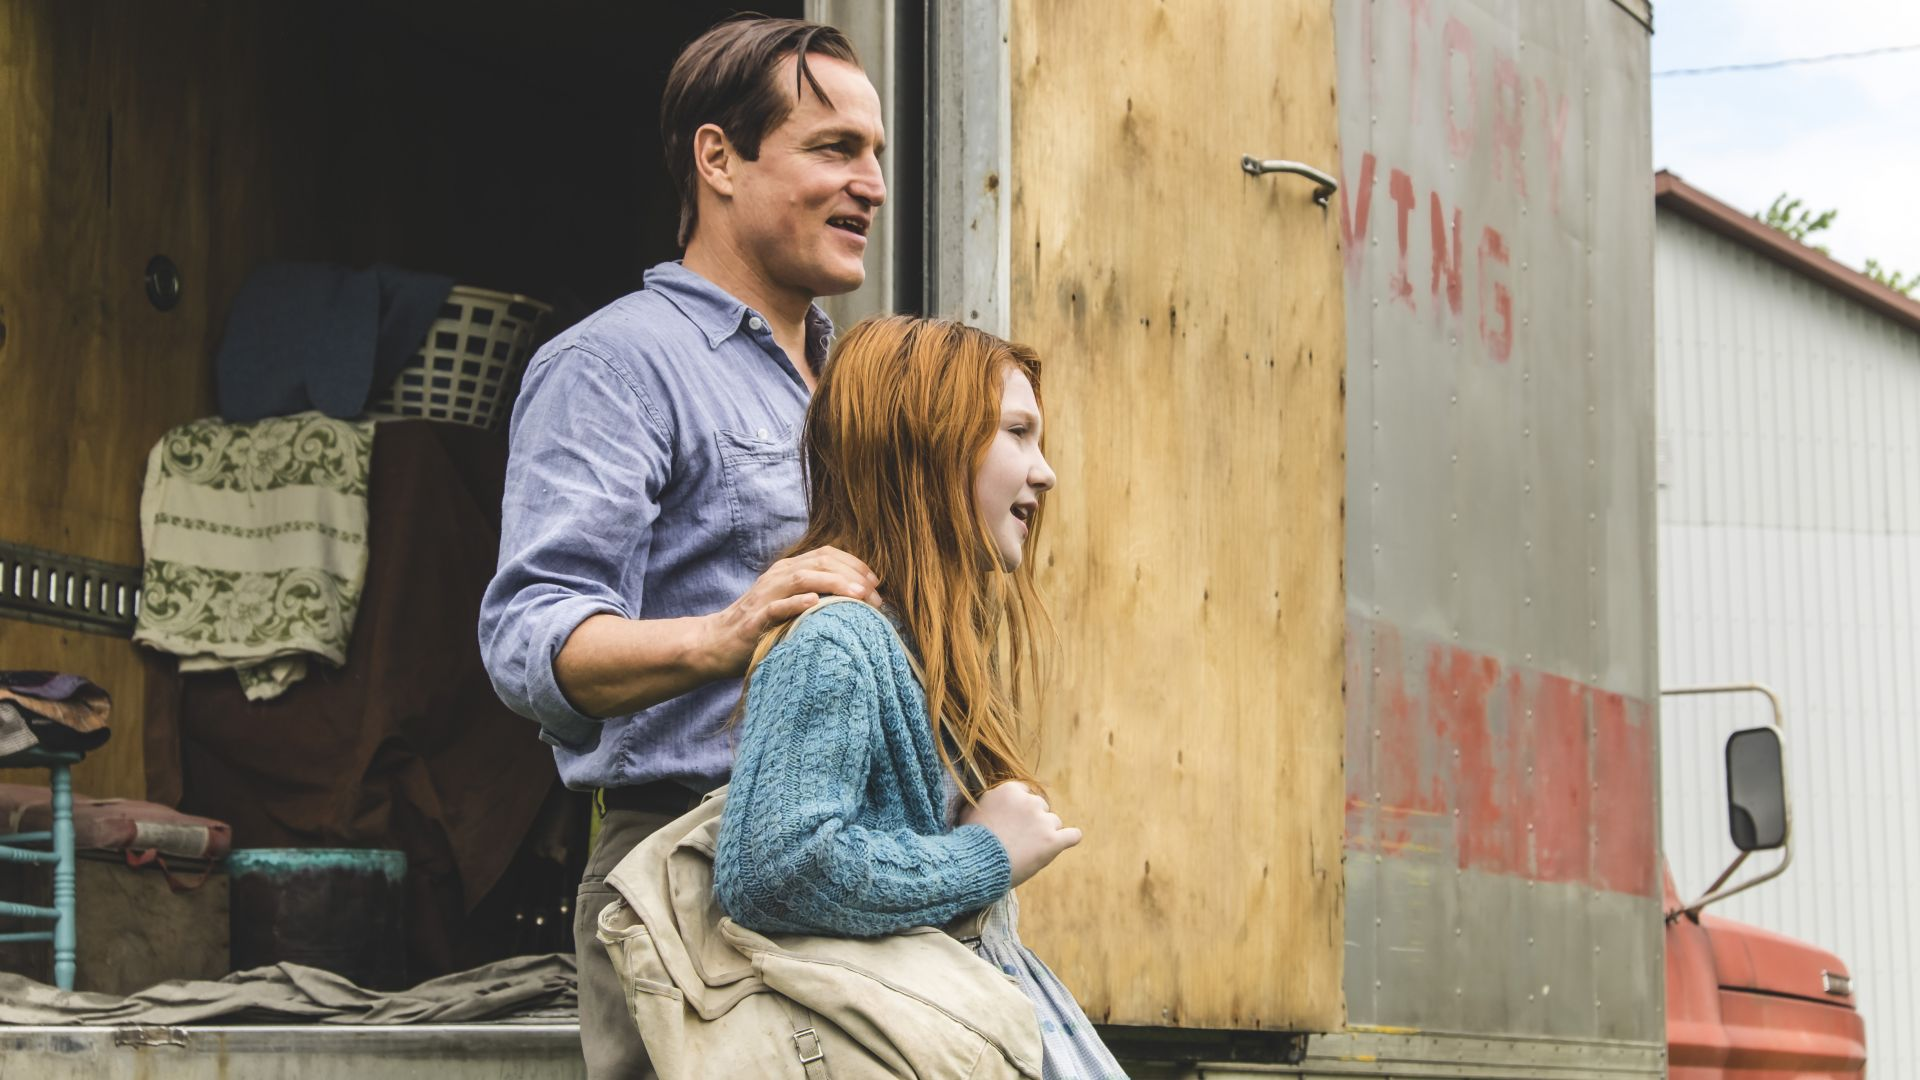 """stereotypes the glass castle Movietrailers199 """"the glass castle official trailer [2017] drama movie hd"""" youtube youtube, 18 may 2017 web 21 july 2017 parker, megan """"rex and rose mary parenting style"""" megan parker's blog np, 06 may 2013 web 20 july 2017 walls, jeannette the glass castle new york scribner, 2006 print."""